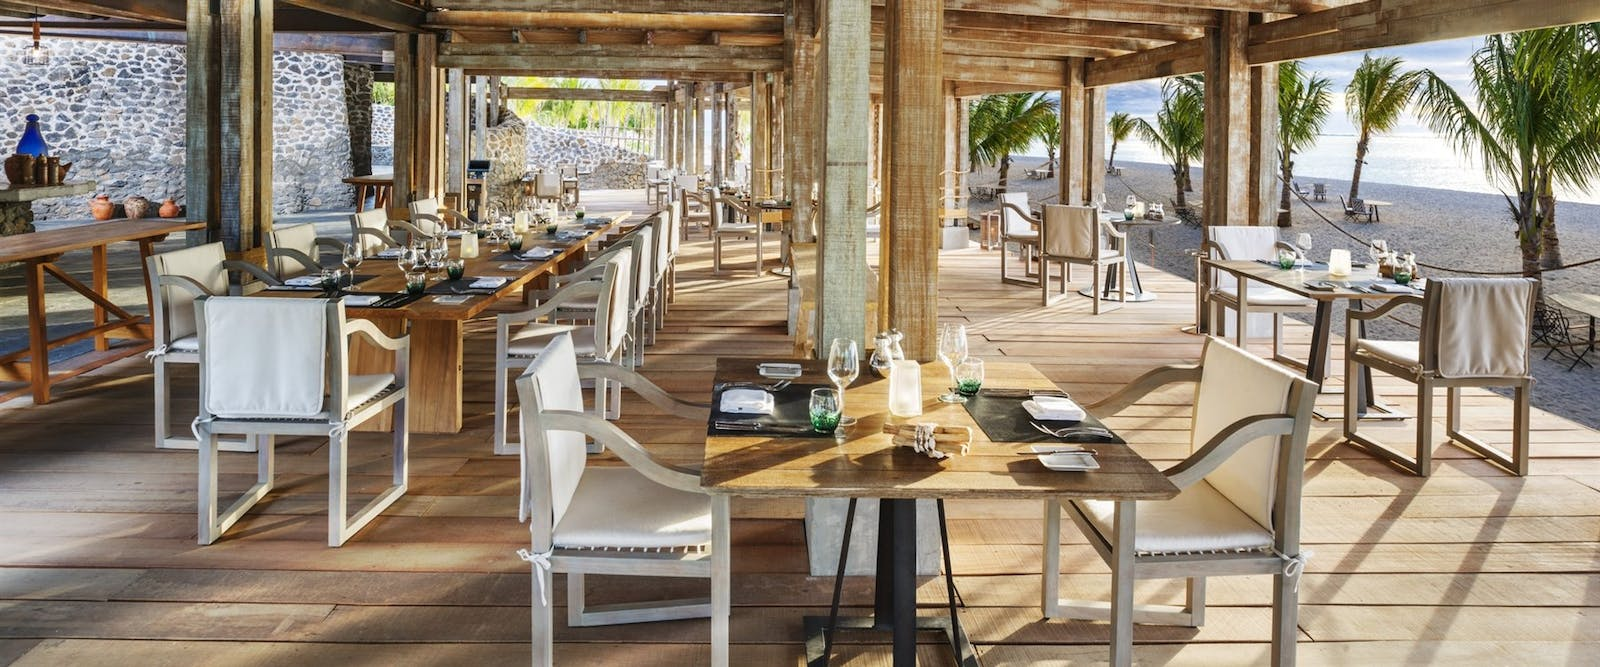 The boathouse grill bar at The St. Regis Mauritius Resort